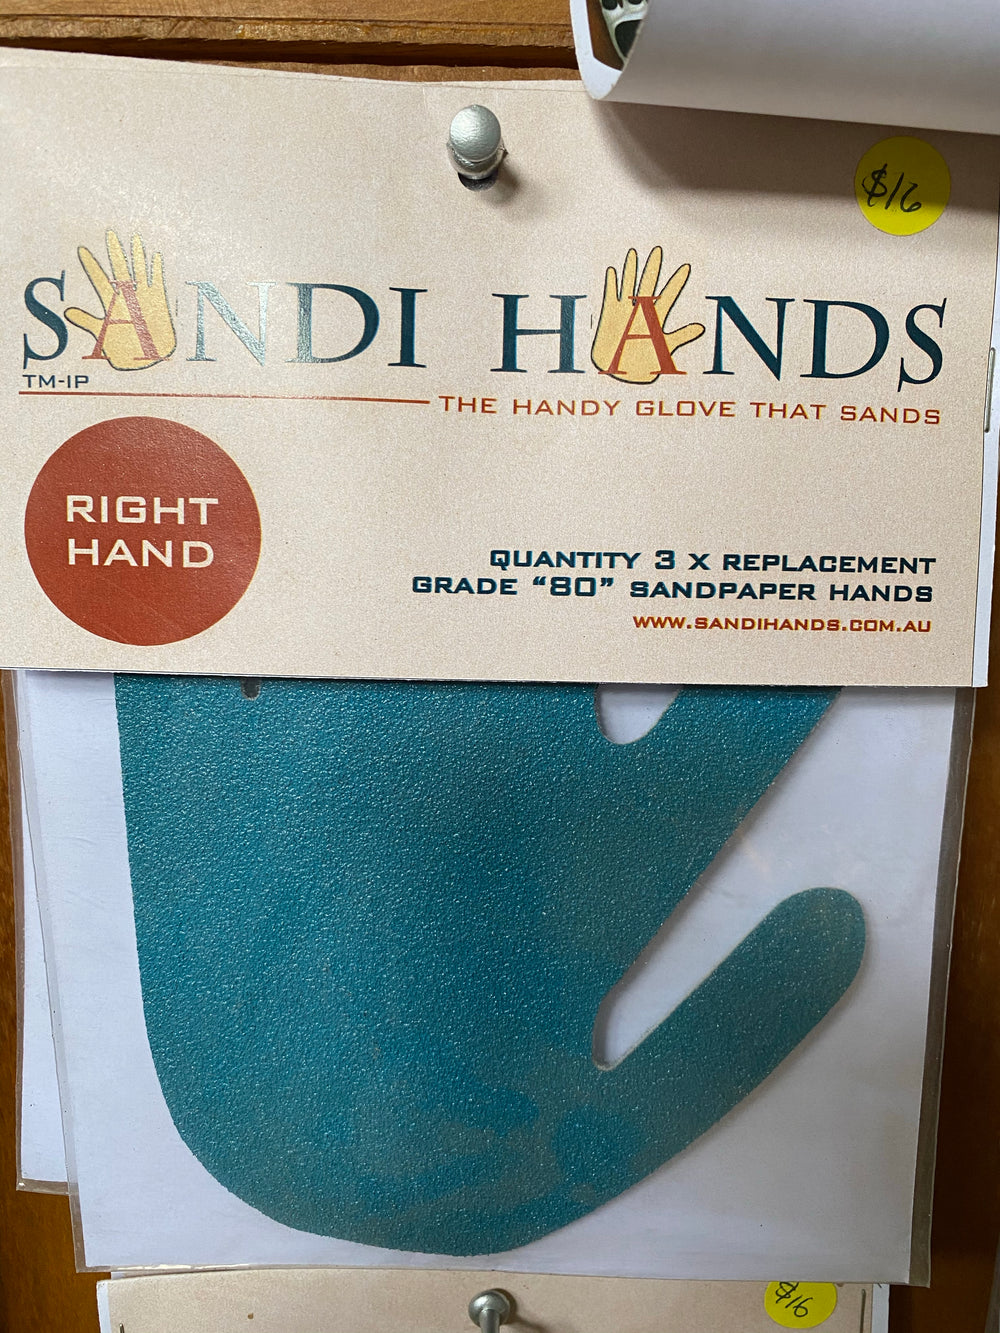 80 grit sandpaper x 3 - Right Hand